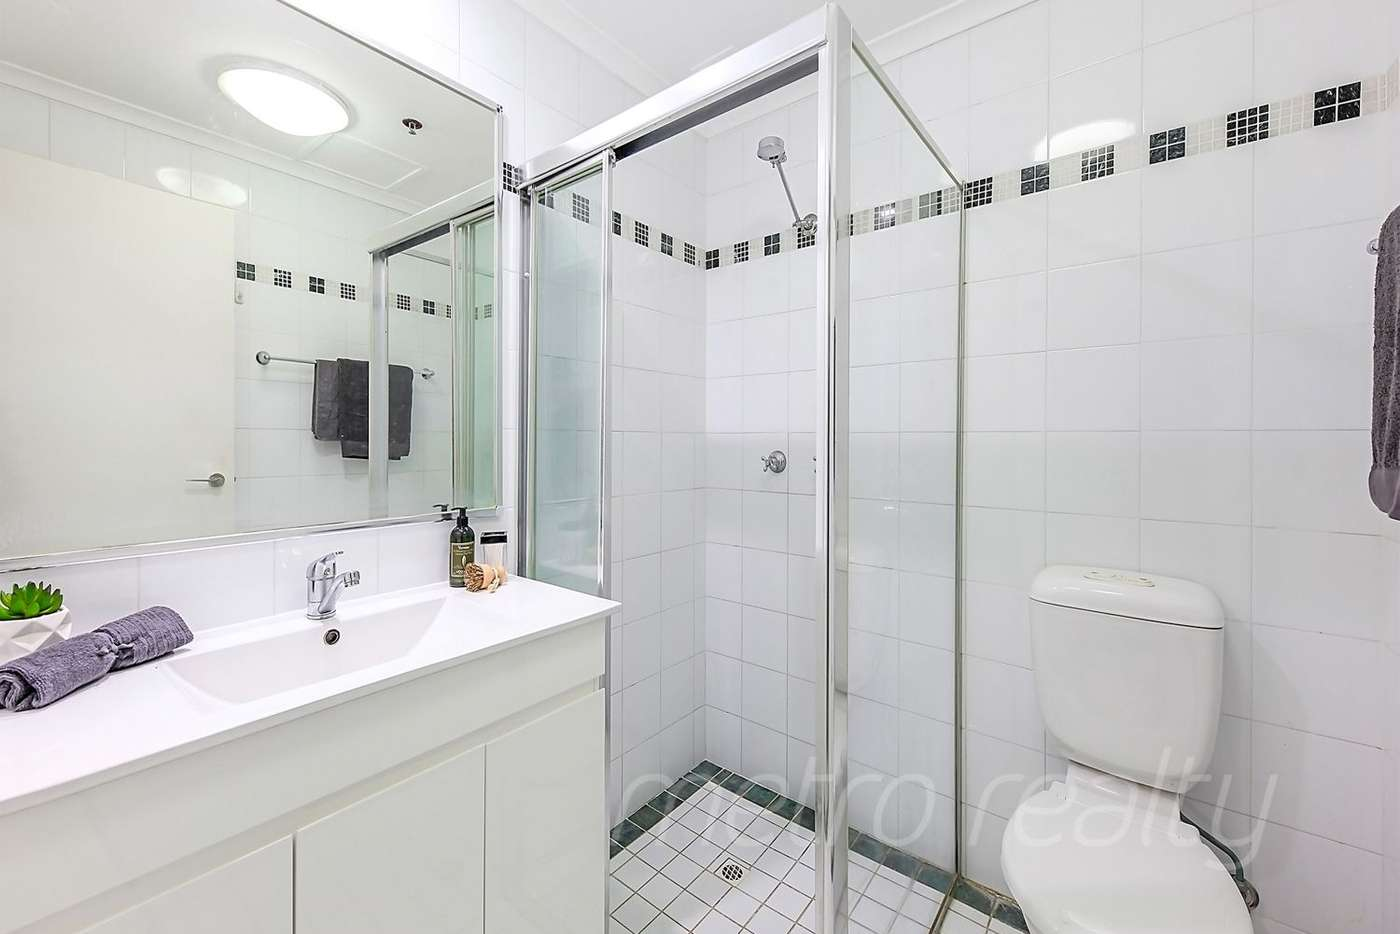 Sixth view of Homely apartment listing, 170/365 Kent St, Sydney NSW 2000